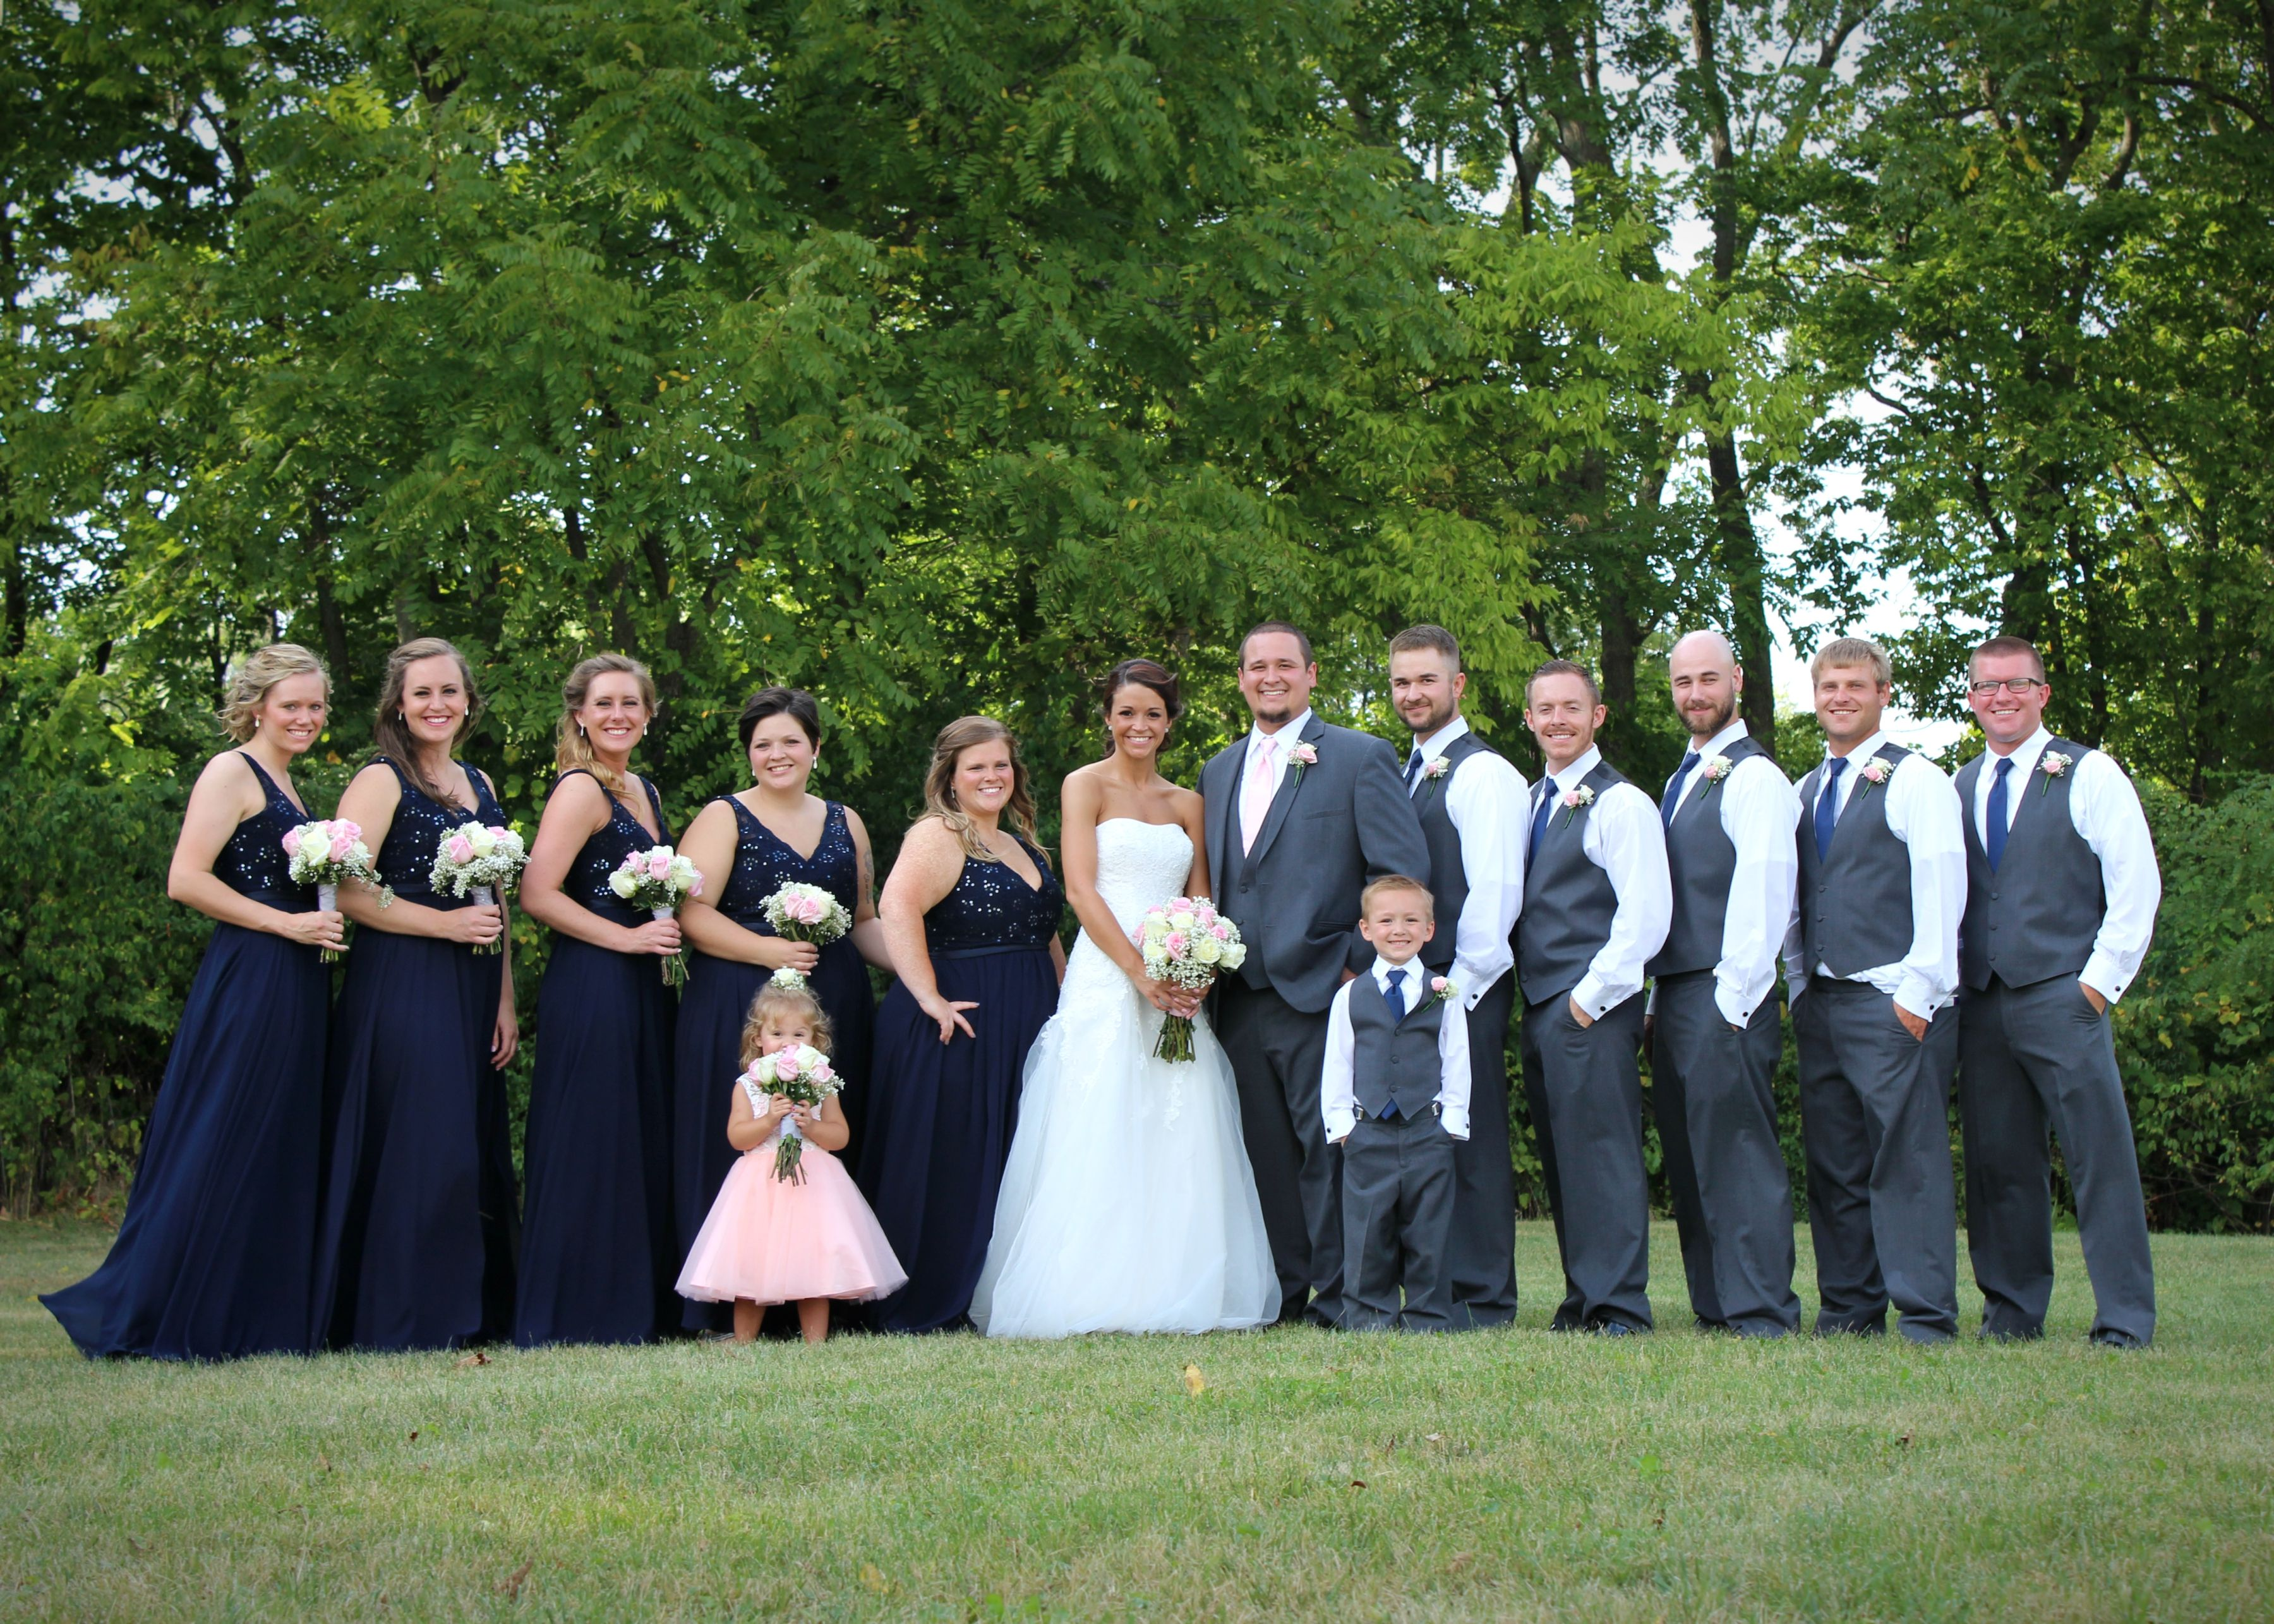 fall bridal party pictures%0A wedding photography outdoor ceremony summer fall wedding bride groom wedding  party bridesmaids groomsmen